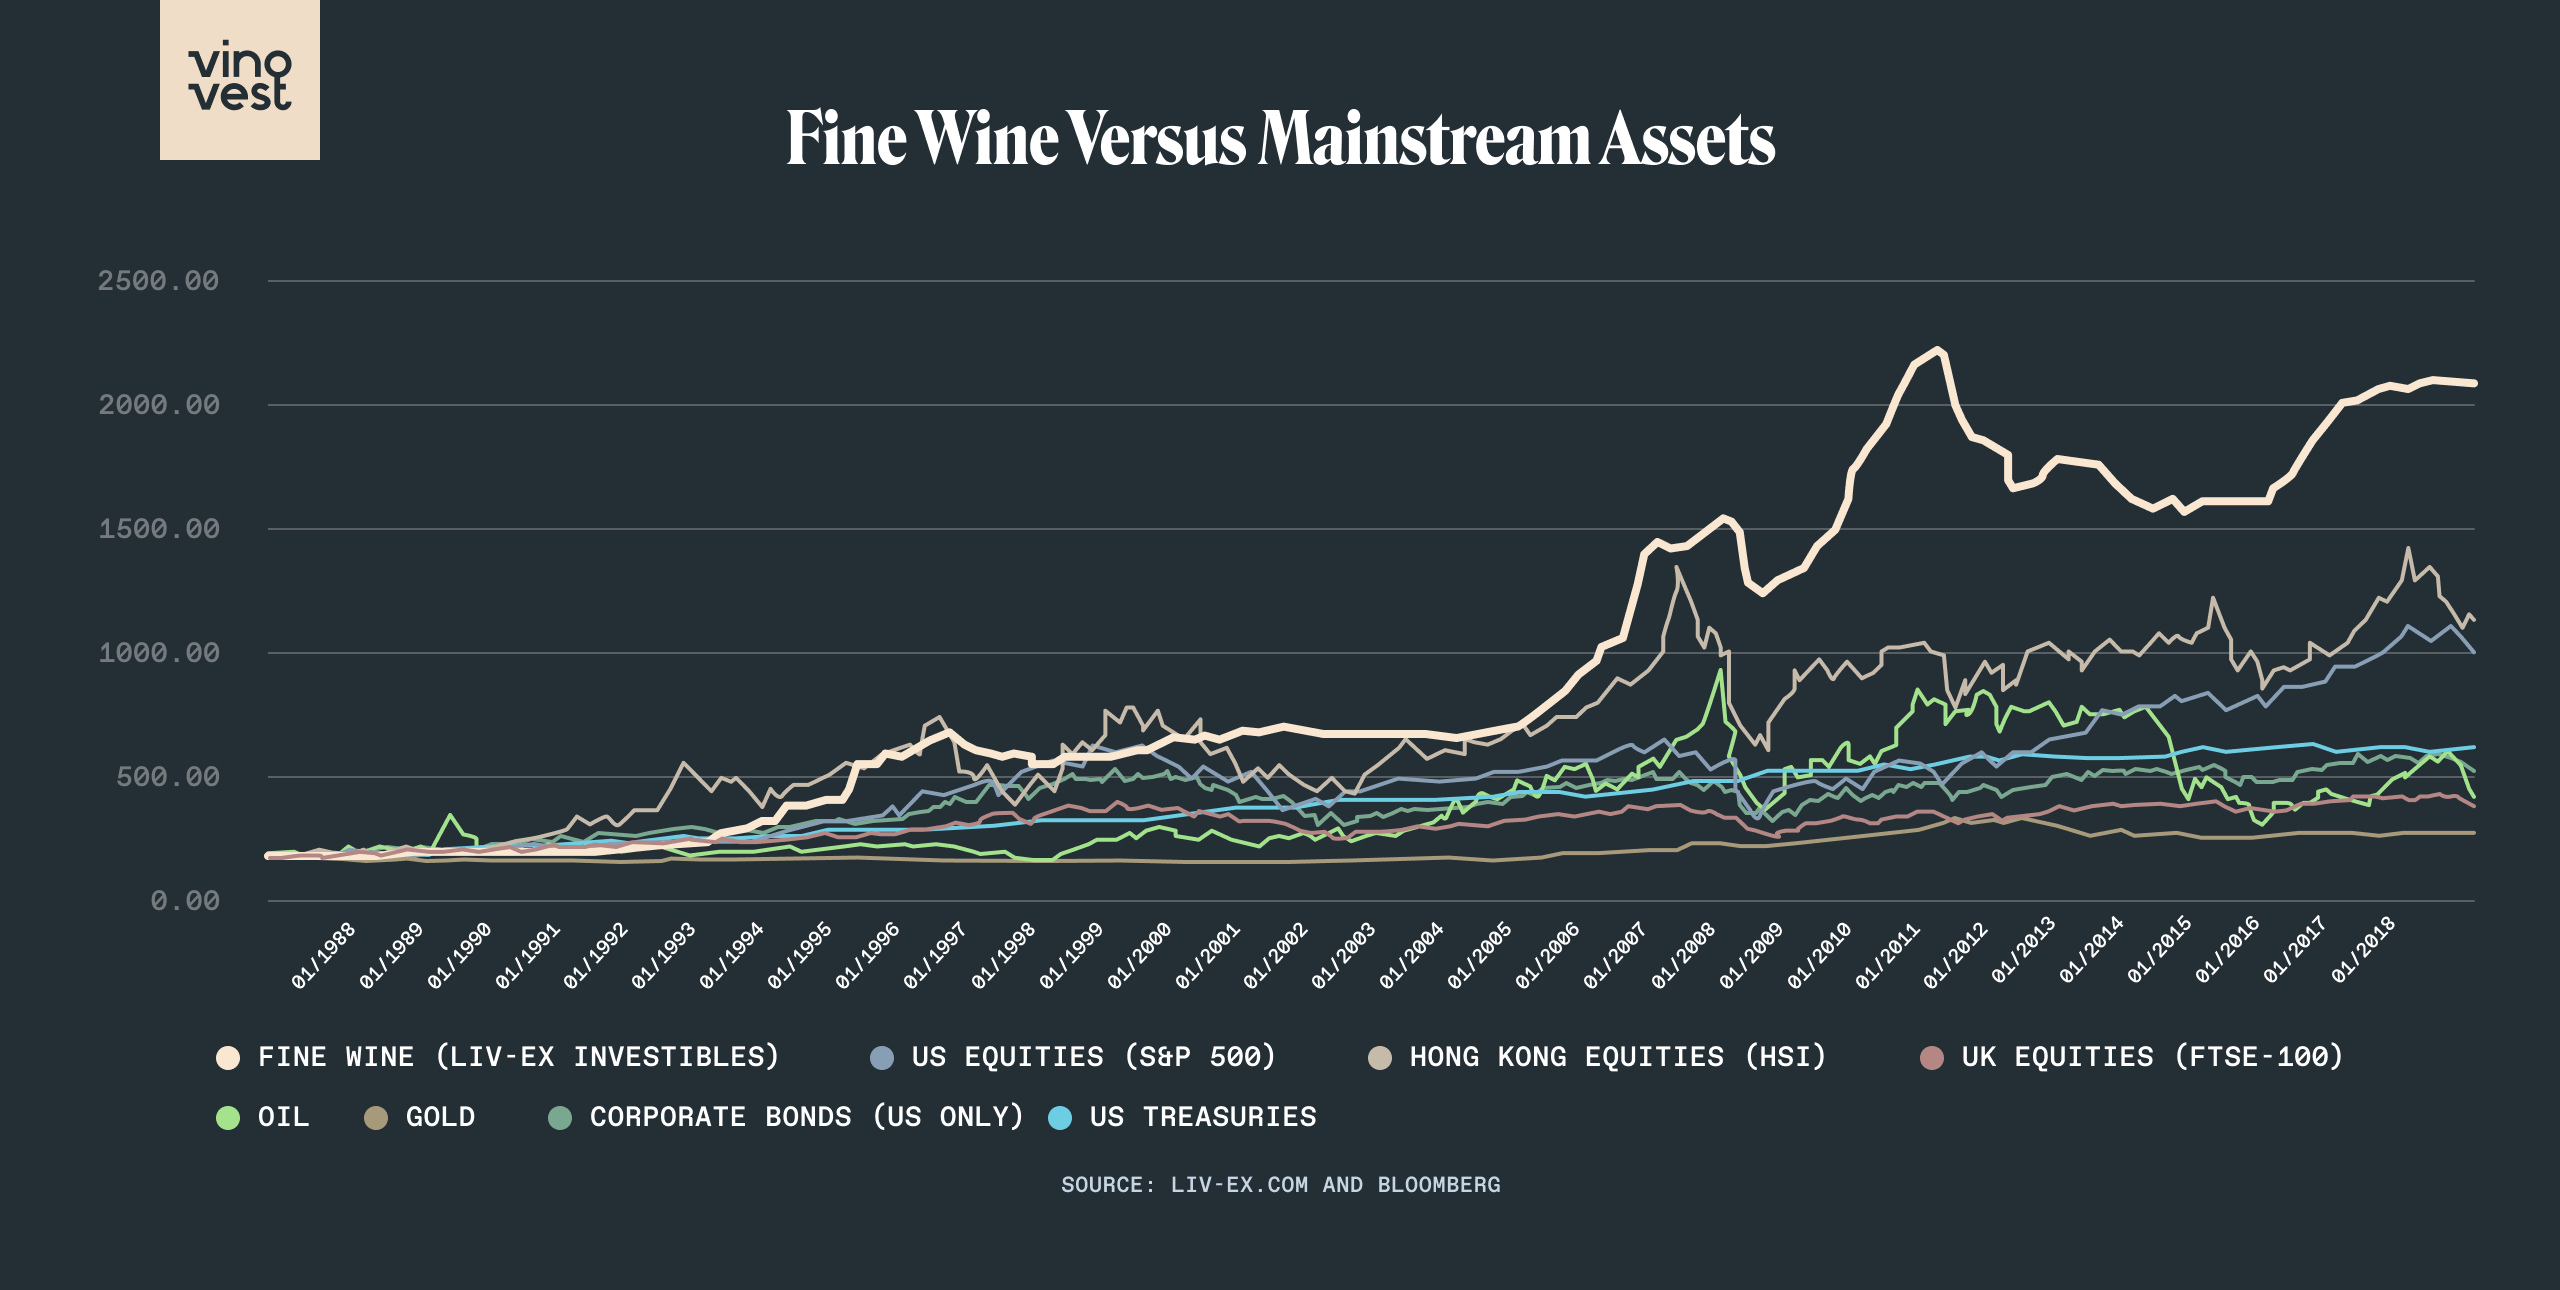 Fine Wine Versus Mainstream Assets